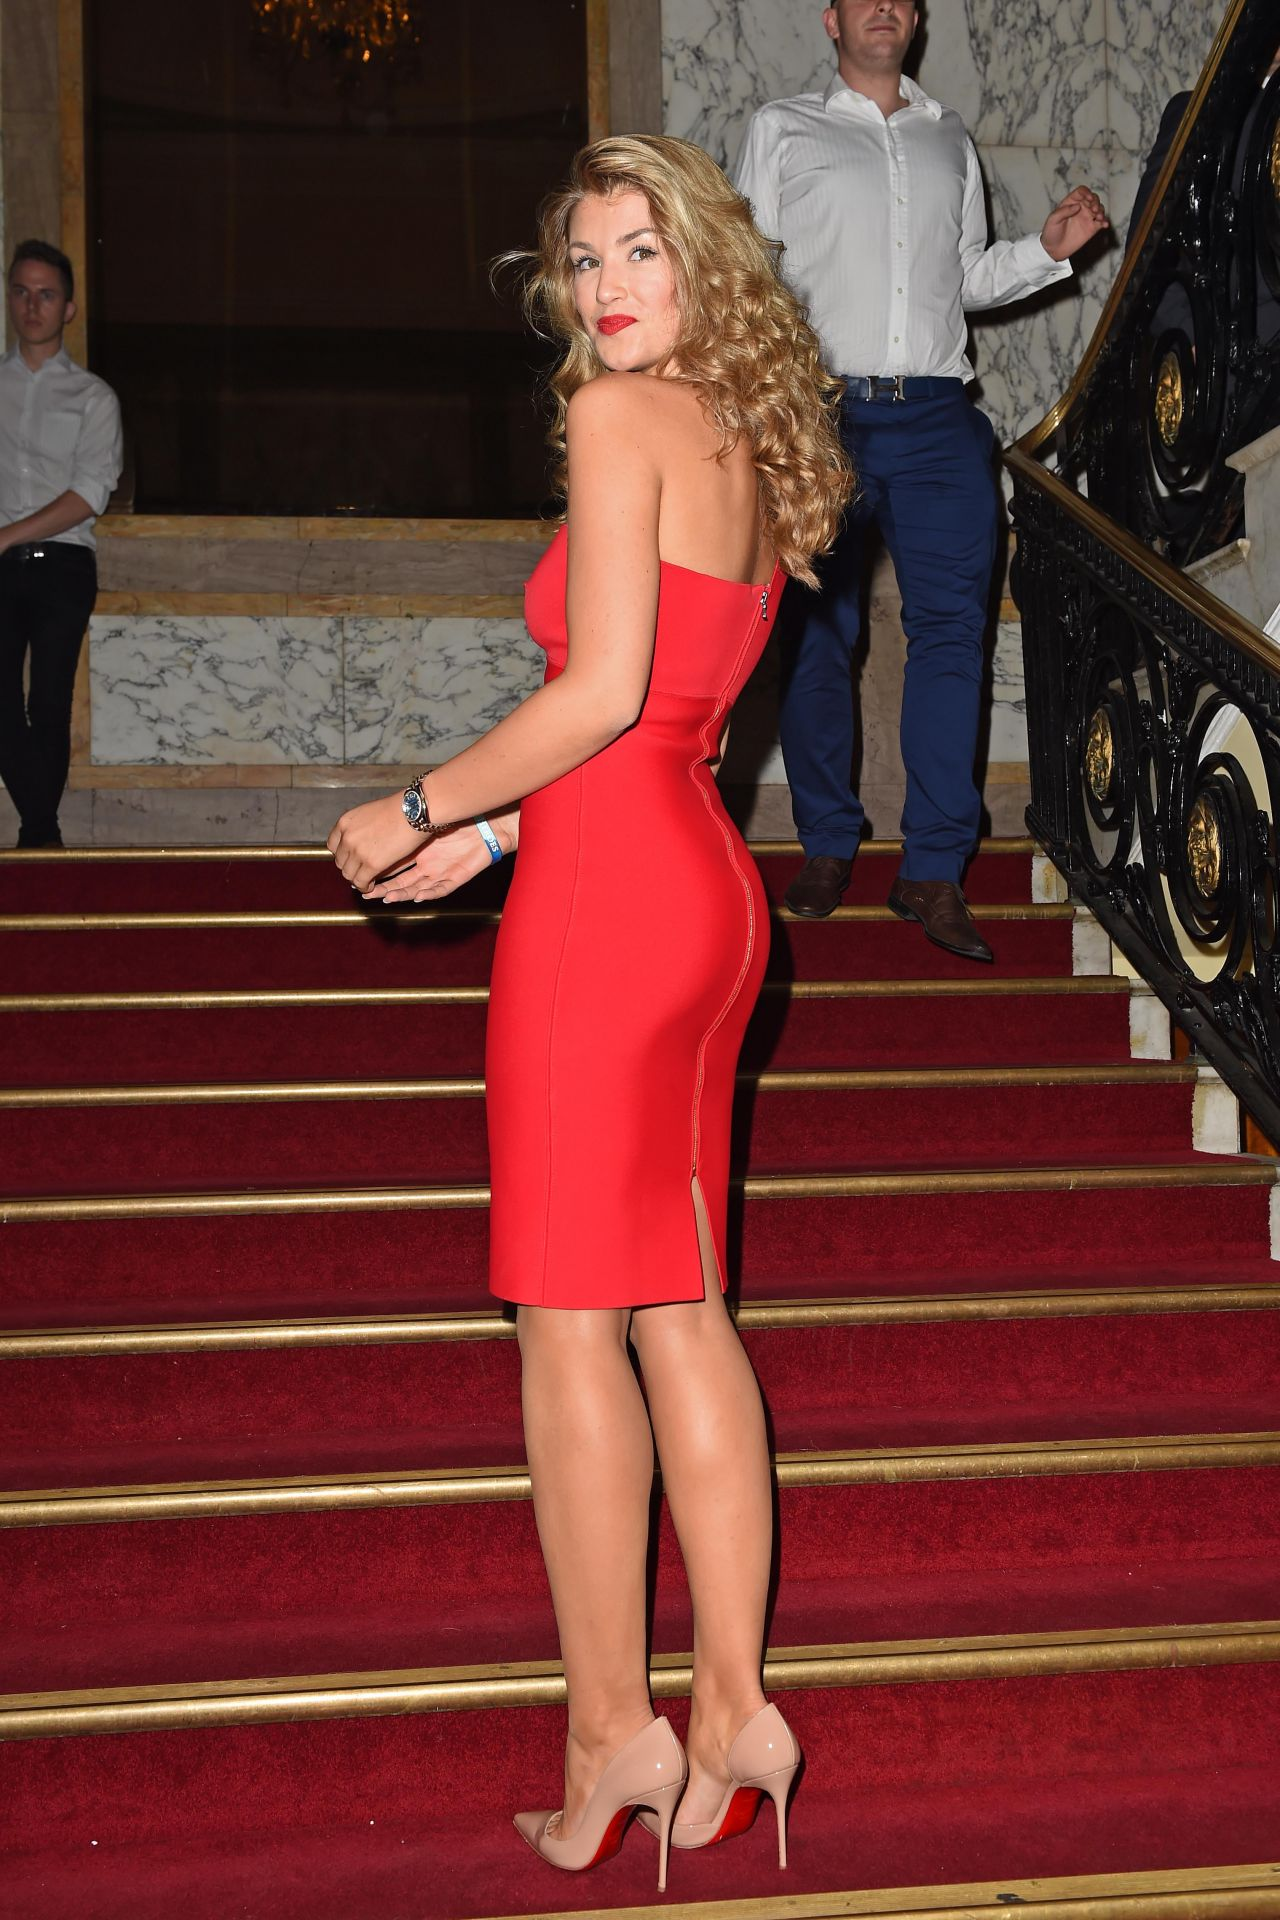 Amy Willerton 3 by drknyght6 on DeviantArt